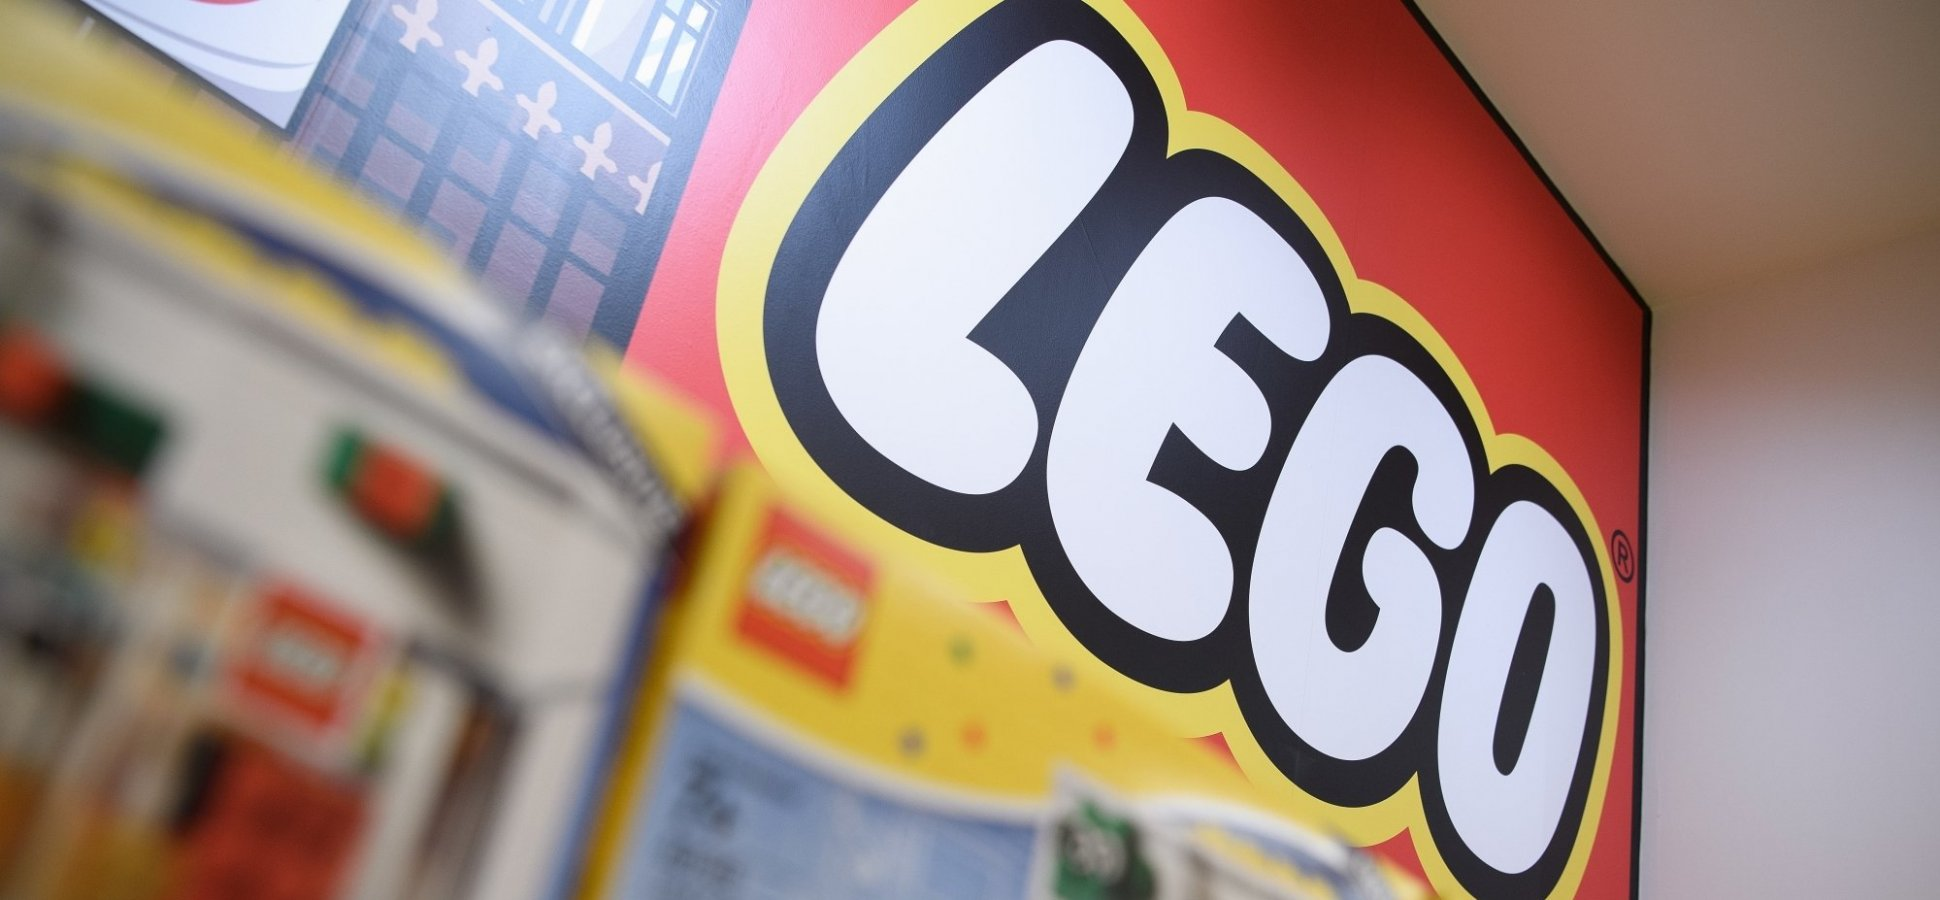 A 7 Year-Old Boy Got Upset After Losing His New Toy. Then a Lego Customer Service Rep Did Something Remarkable